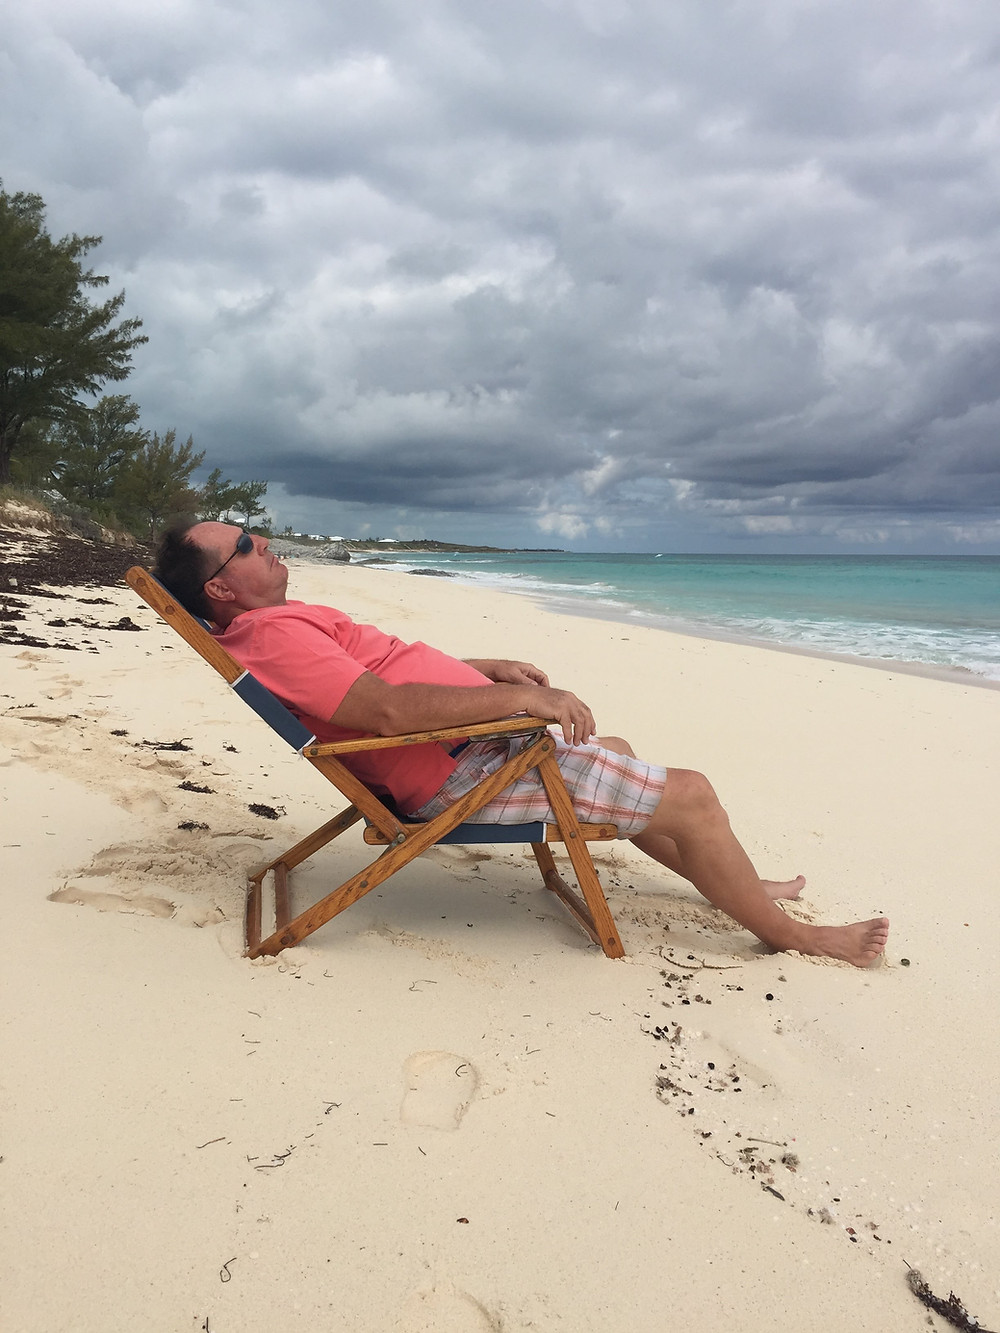 Relaxing on a chair right on the beach.